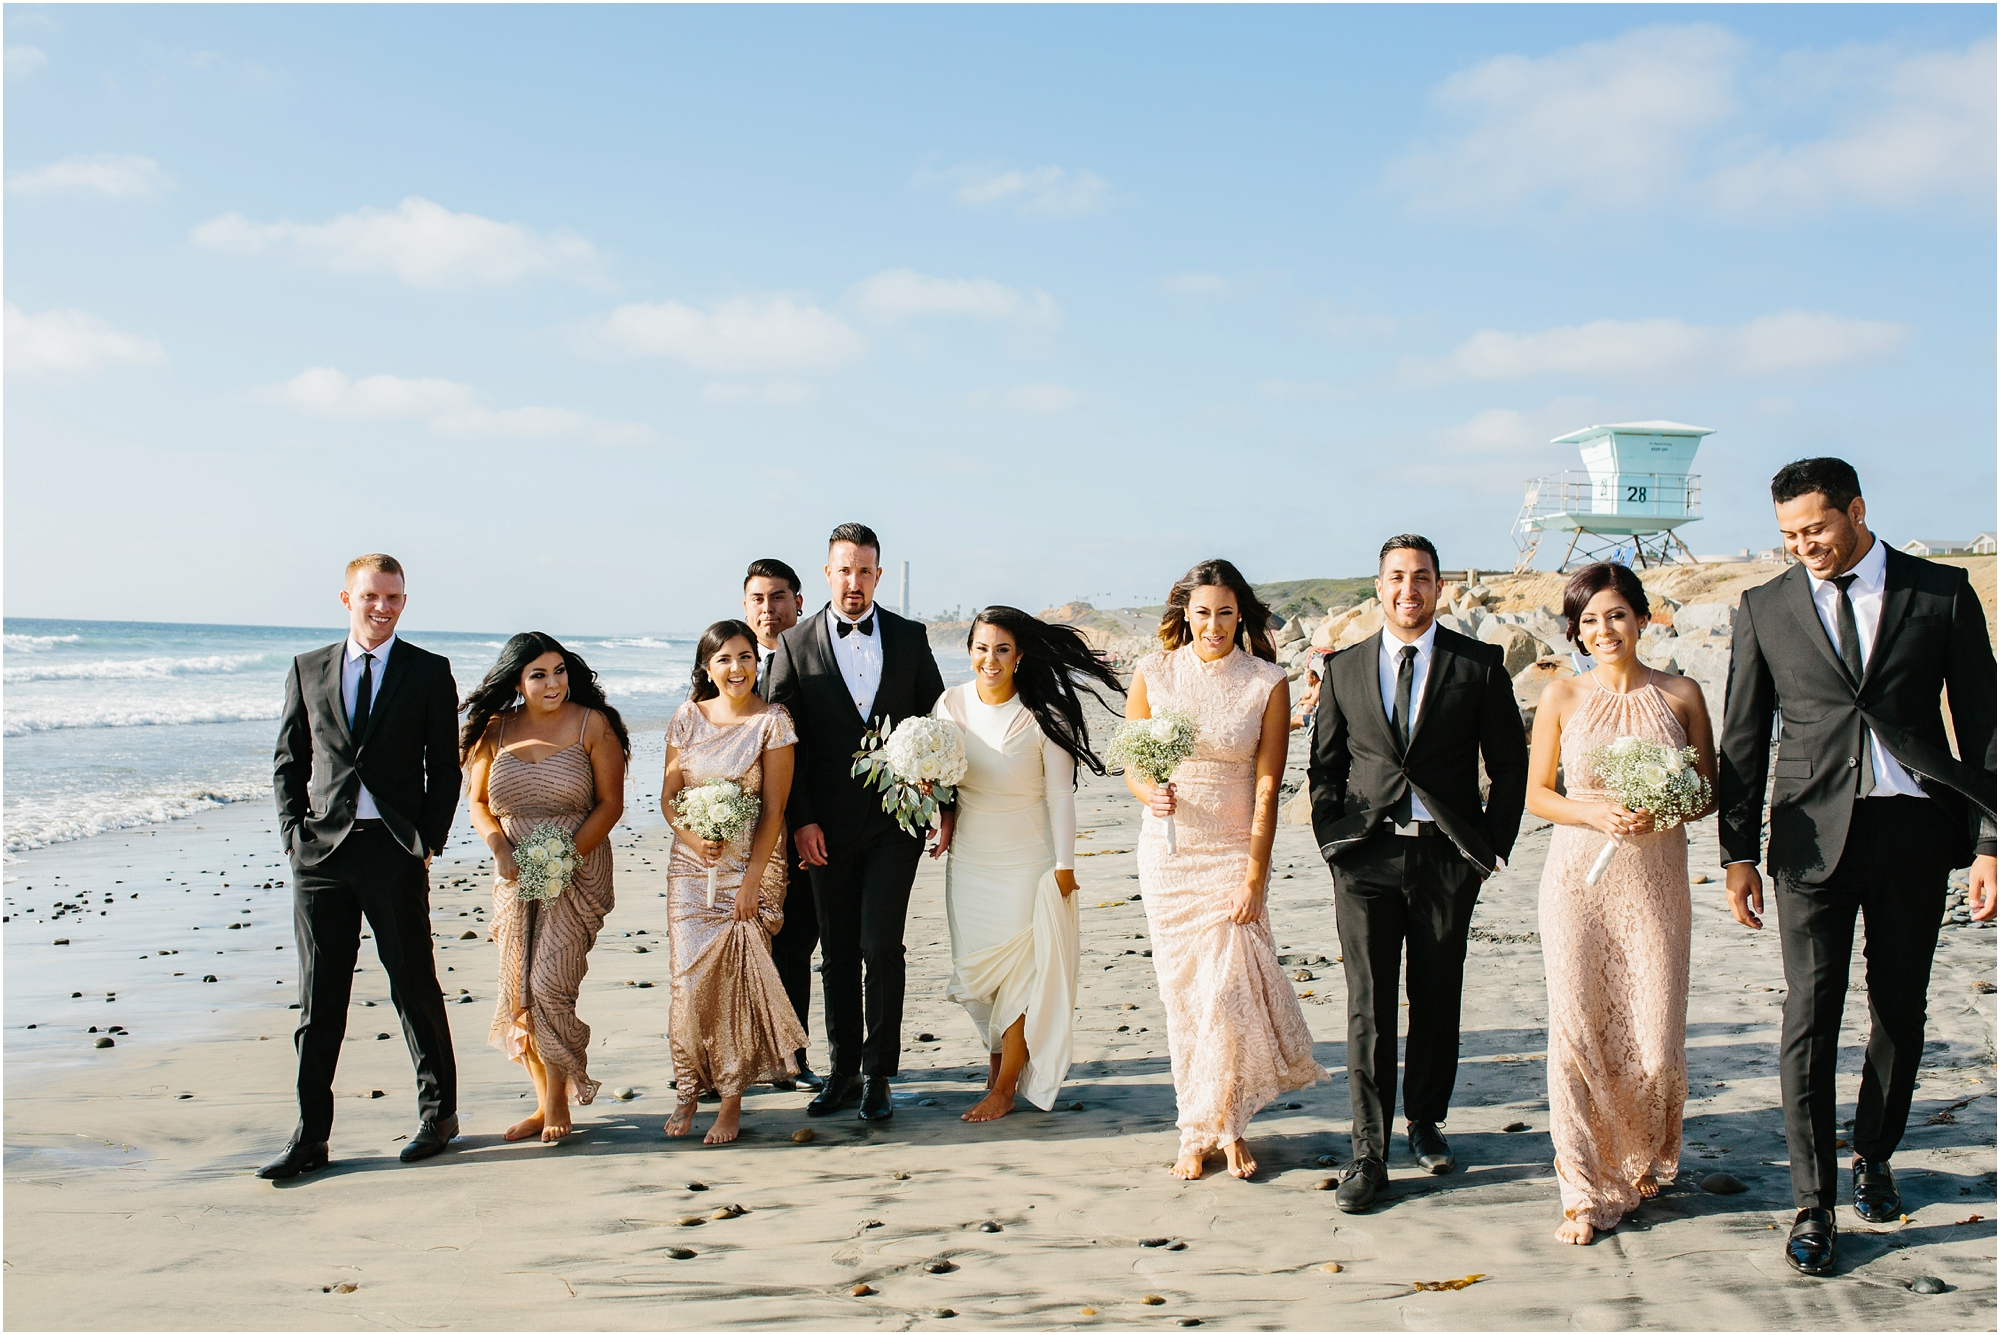 Carlsbad Beach Wedding Photos - https://brittneyhannonphotography.com